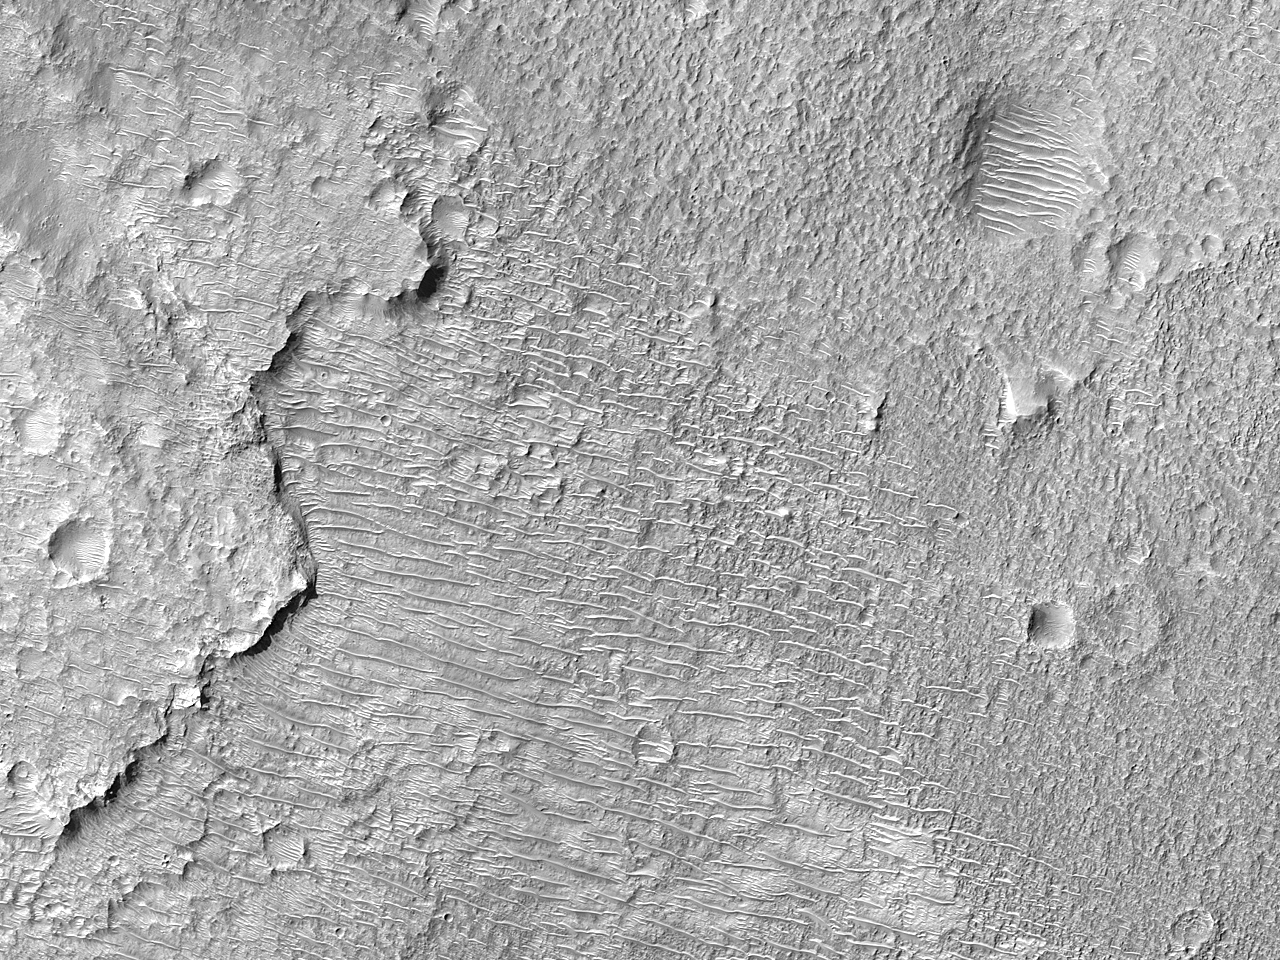 A Sinuous Ridge in Peraea Cavus